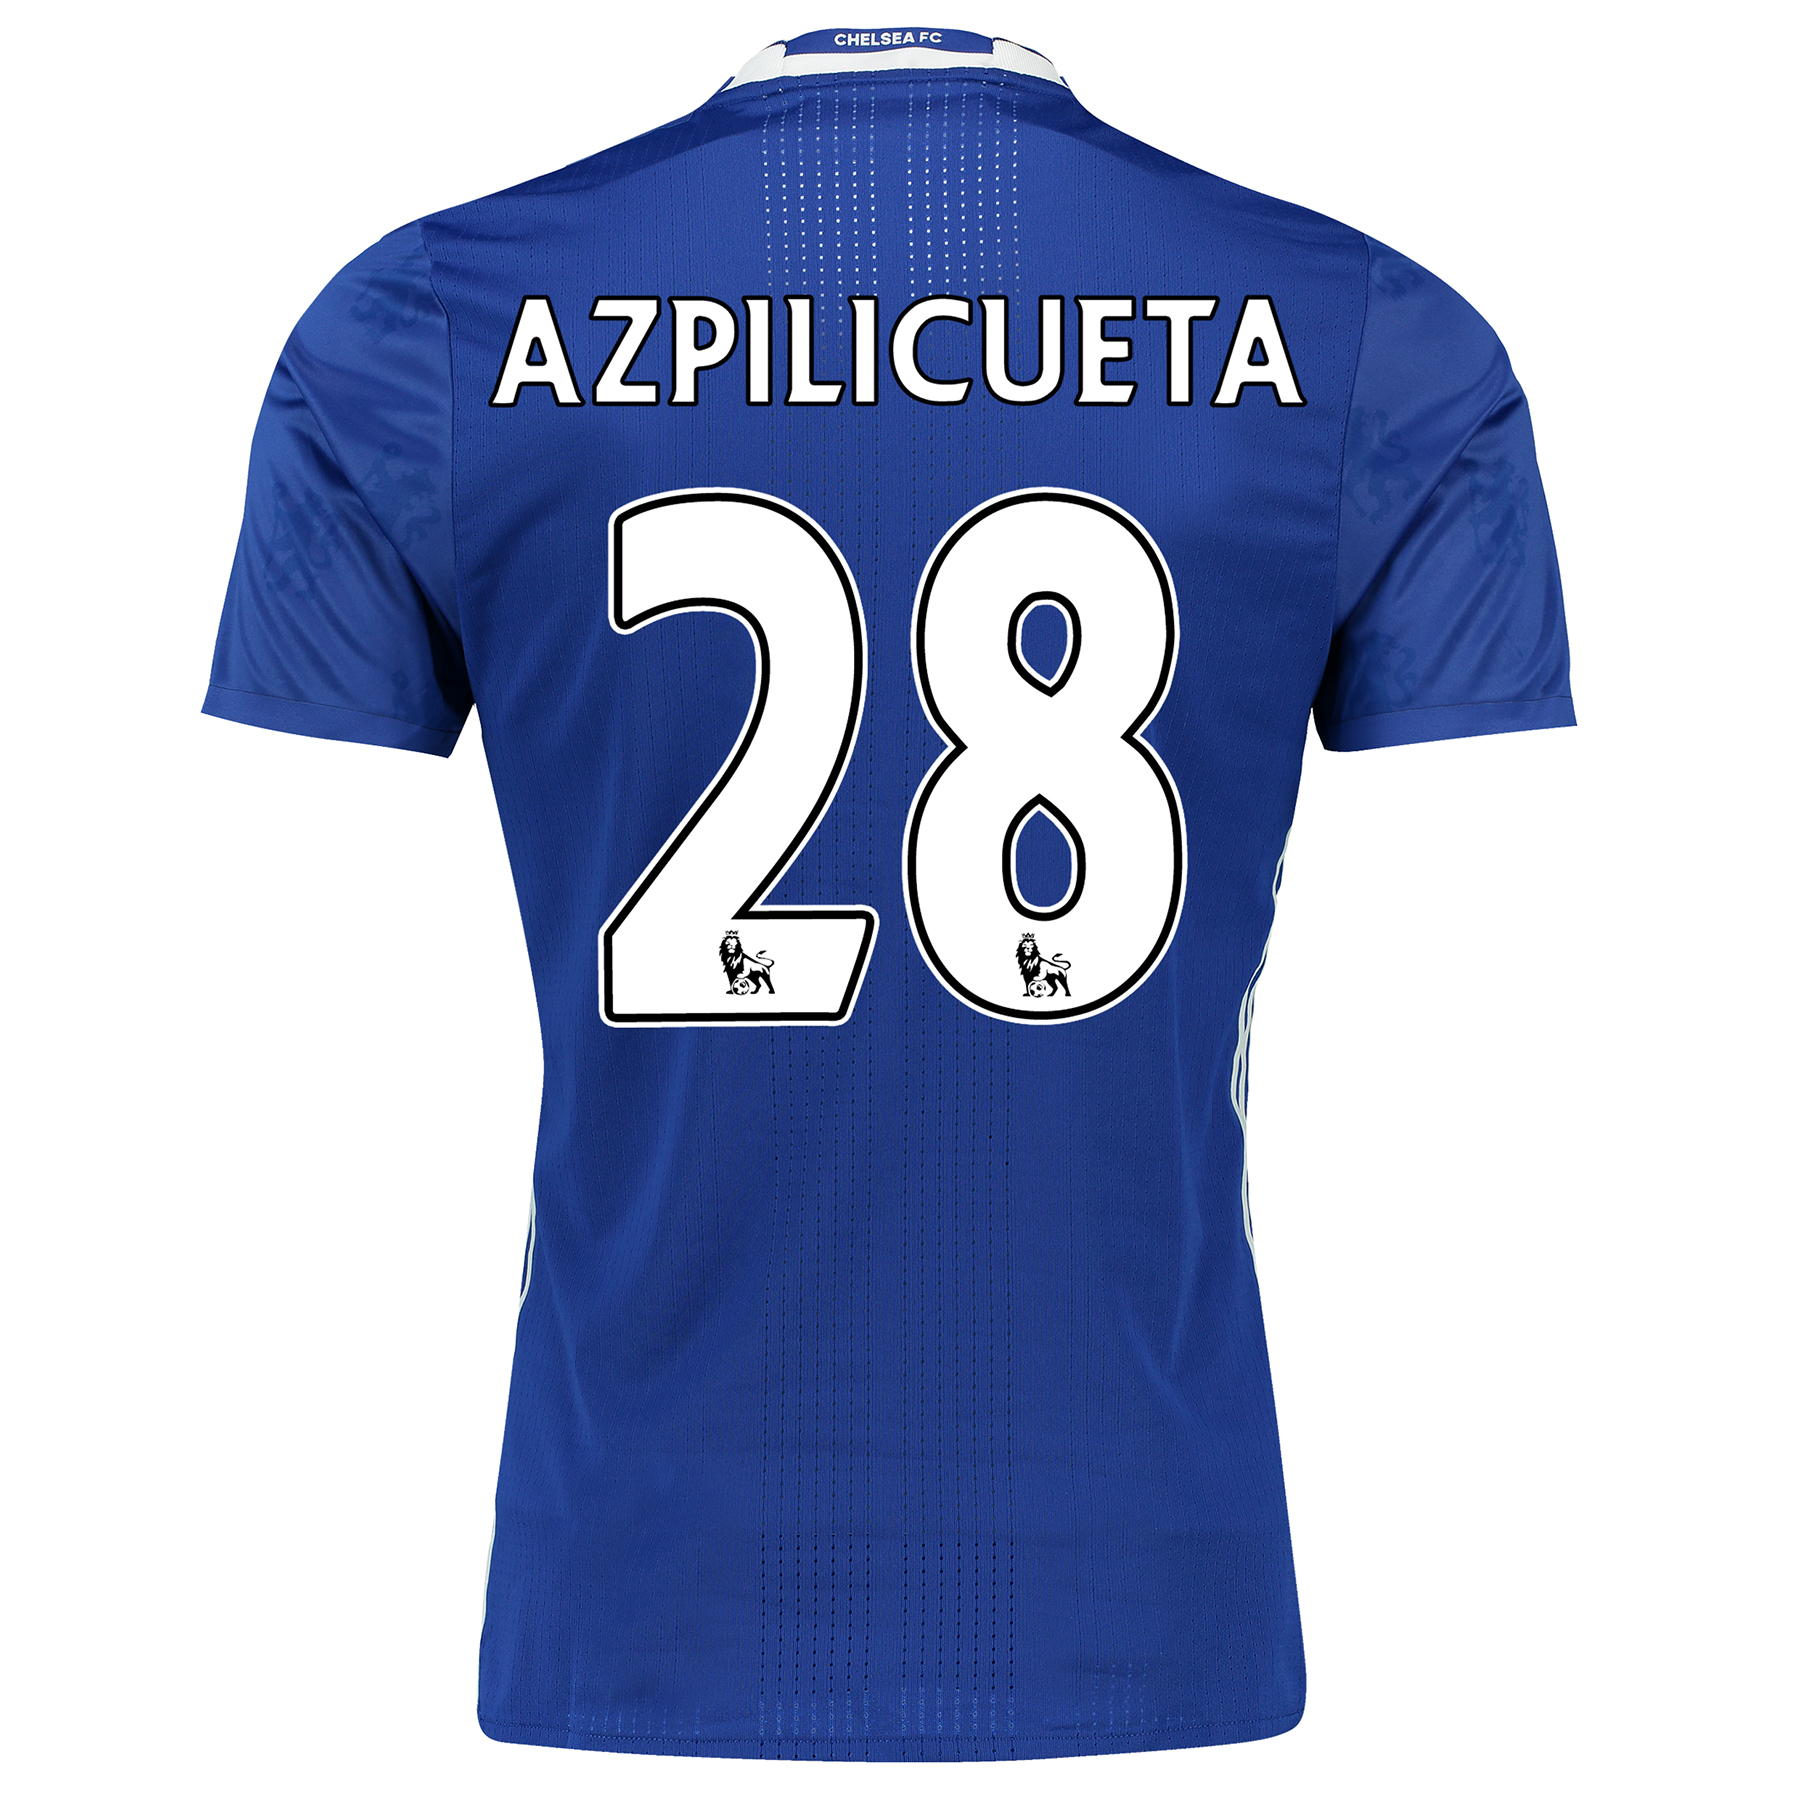 Shop Azpilicueta Printed Shirts